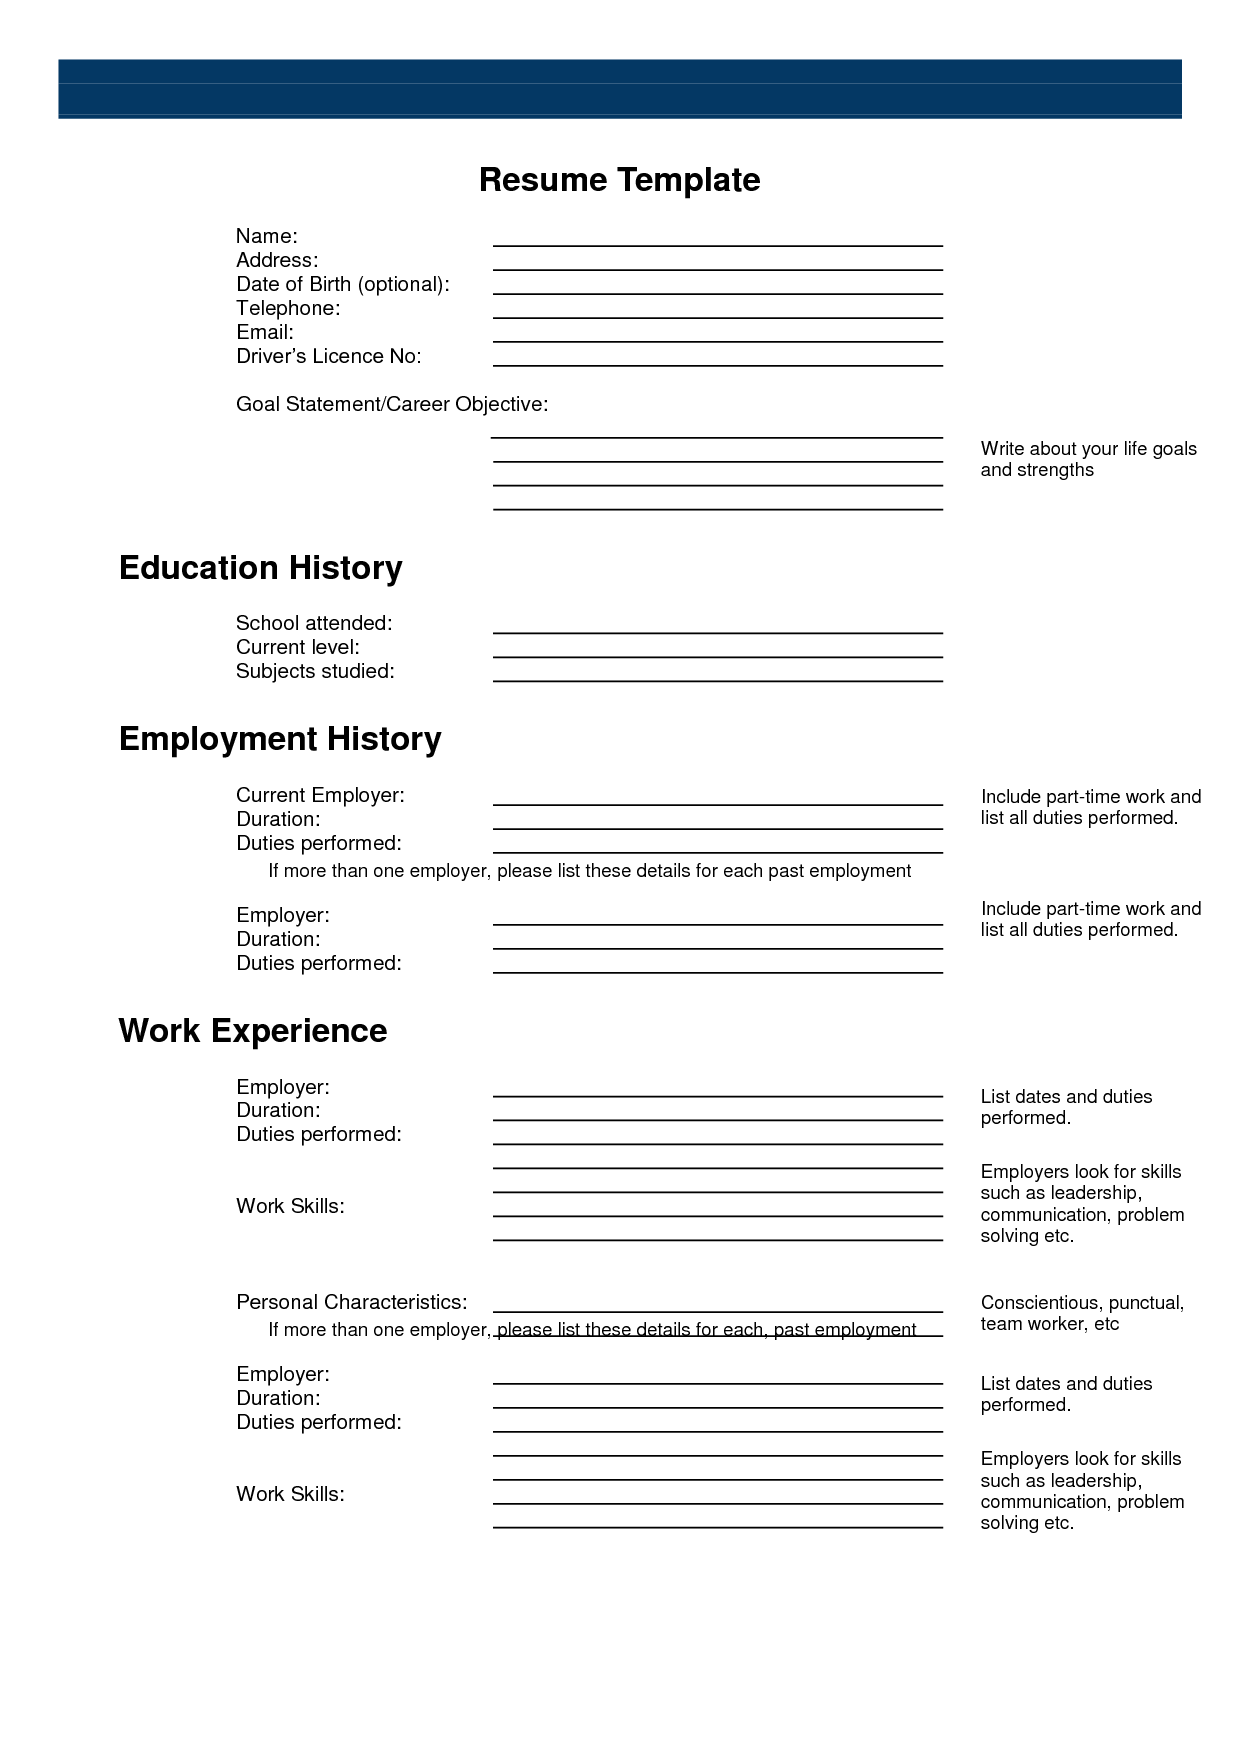 Best Free Resume Templates Free Printable Sample Resume Templates  Httpwwwresumecareer